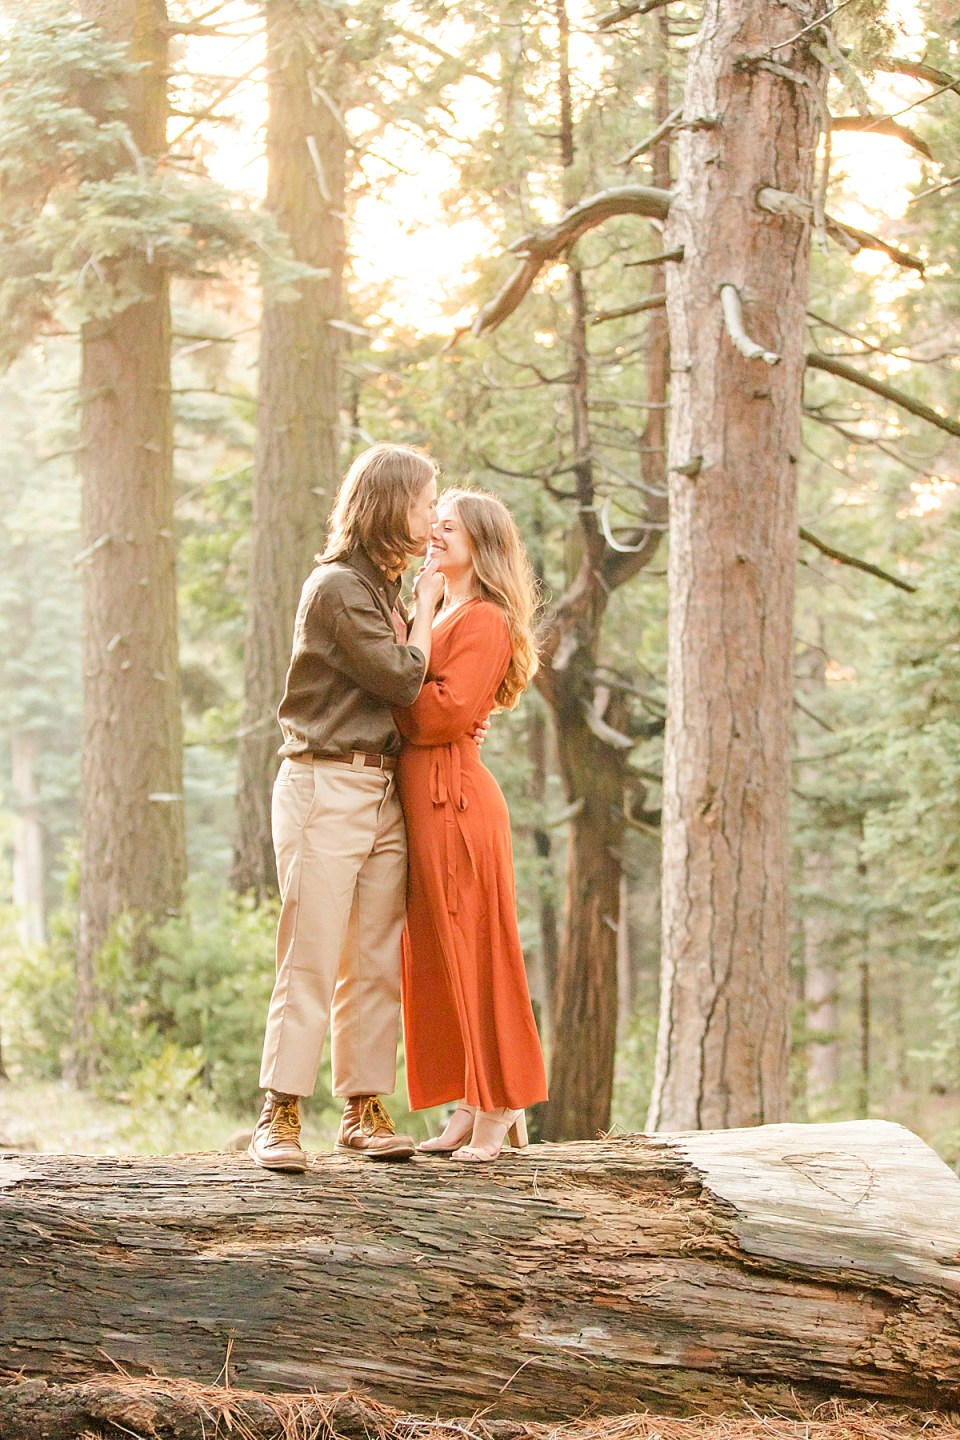 Rothwell pulling his fiancé in close with his arm around her waist and his other hand pulling her chin in for a kiss. Abby is standing on the tips of her toes to give Rothwell a kiss during their Lake Arrowhead Engagement session.